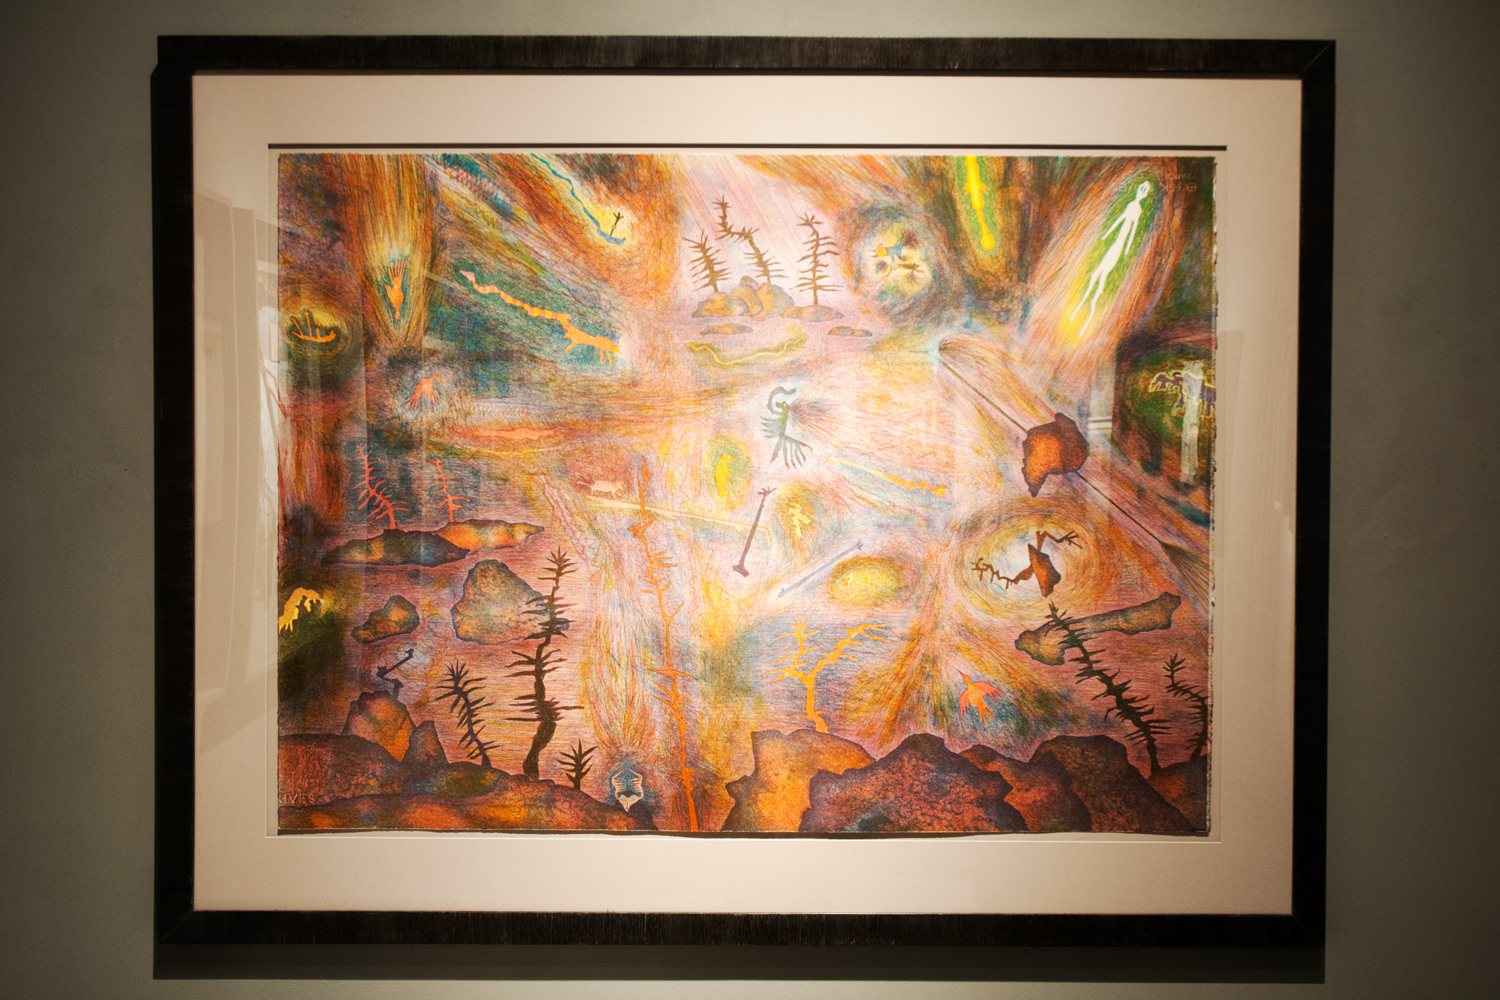 Frenzy Encroachment upon the Earth, 1989, color lithograph, 1989, 41¼ x 51½ inches